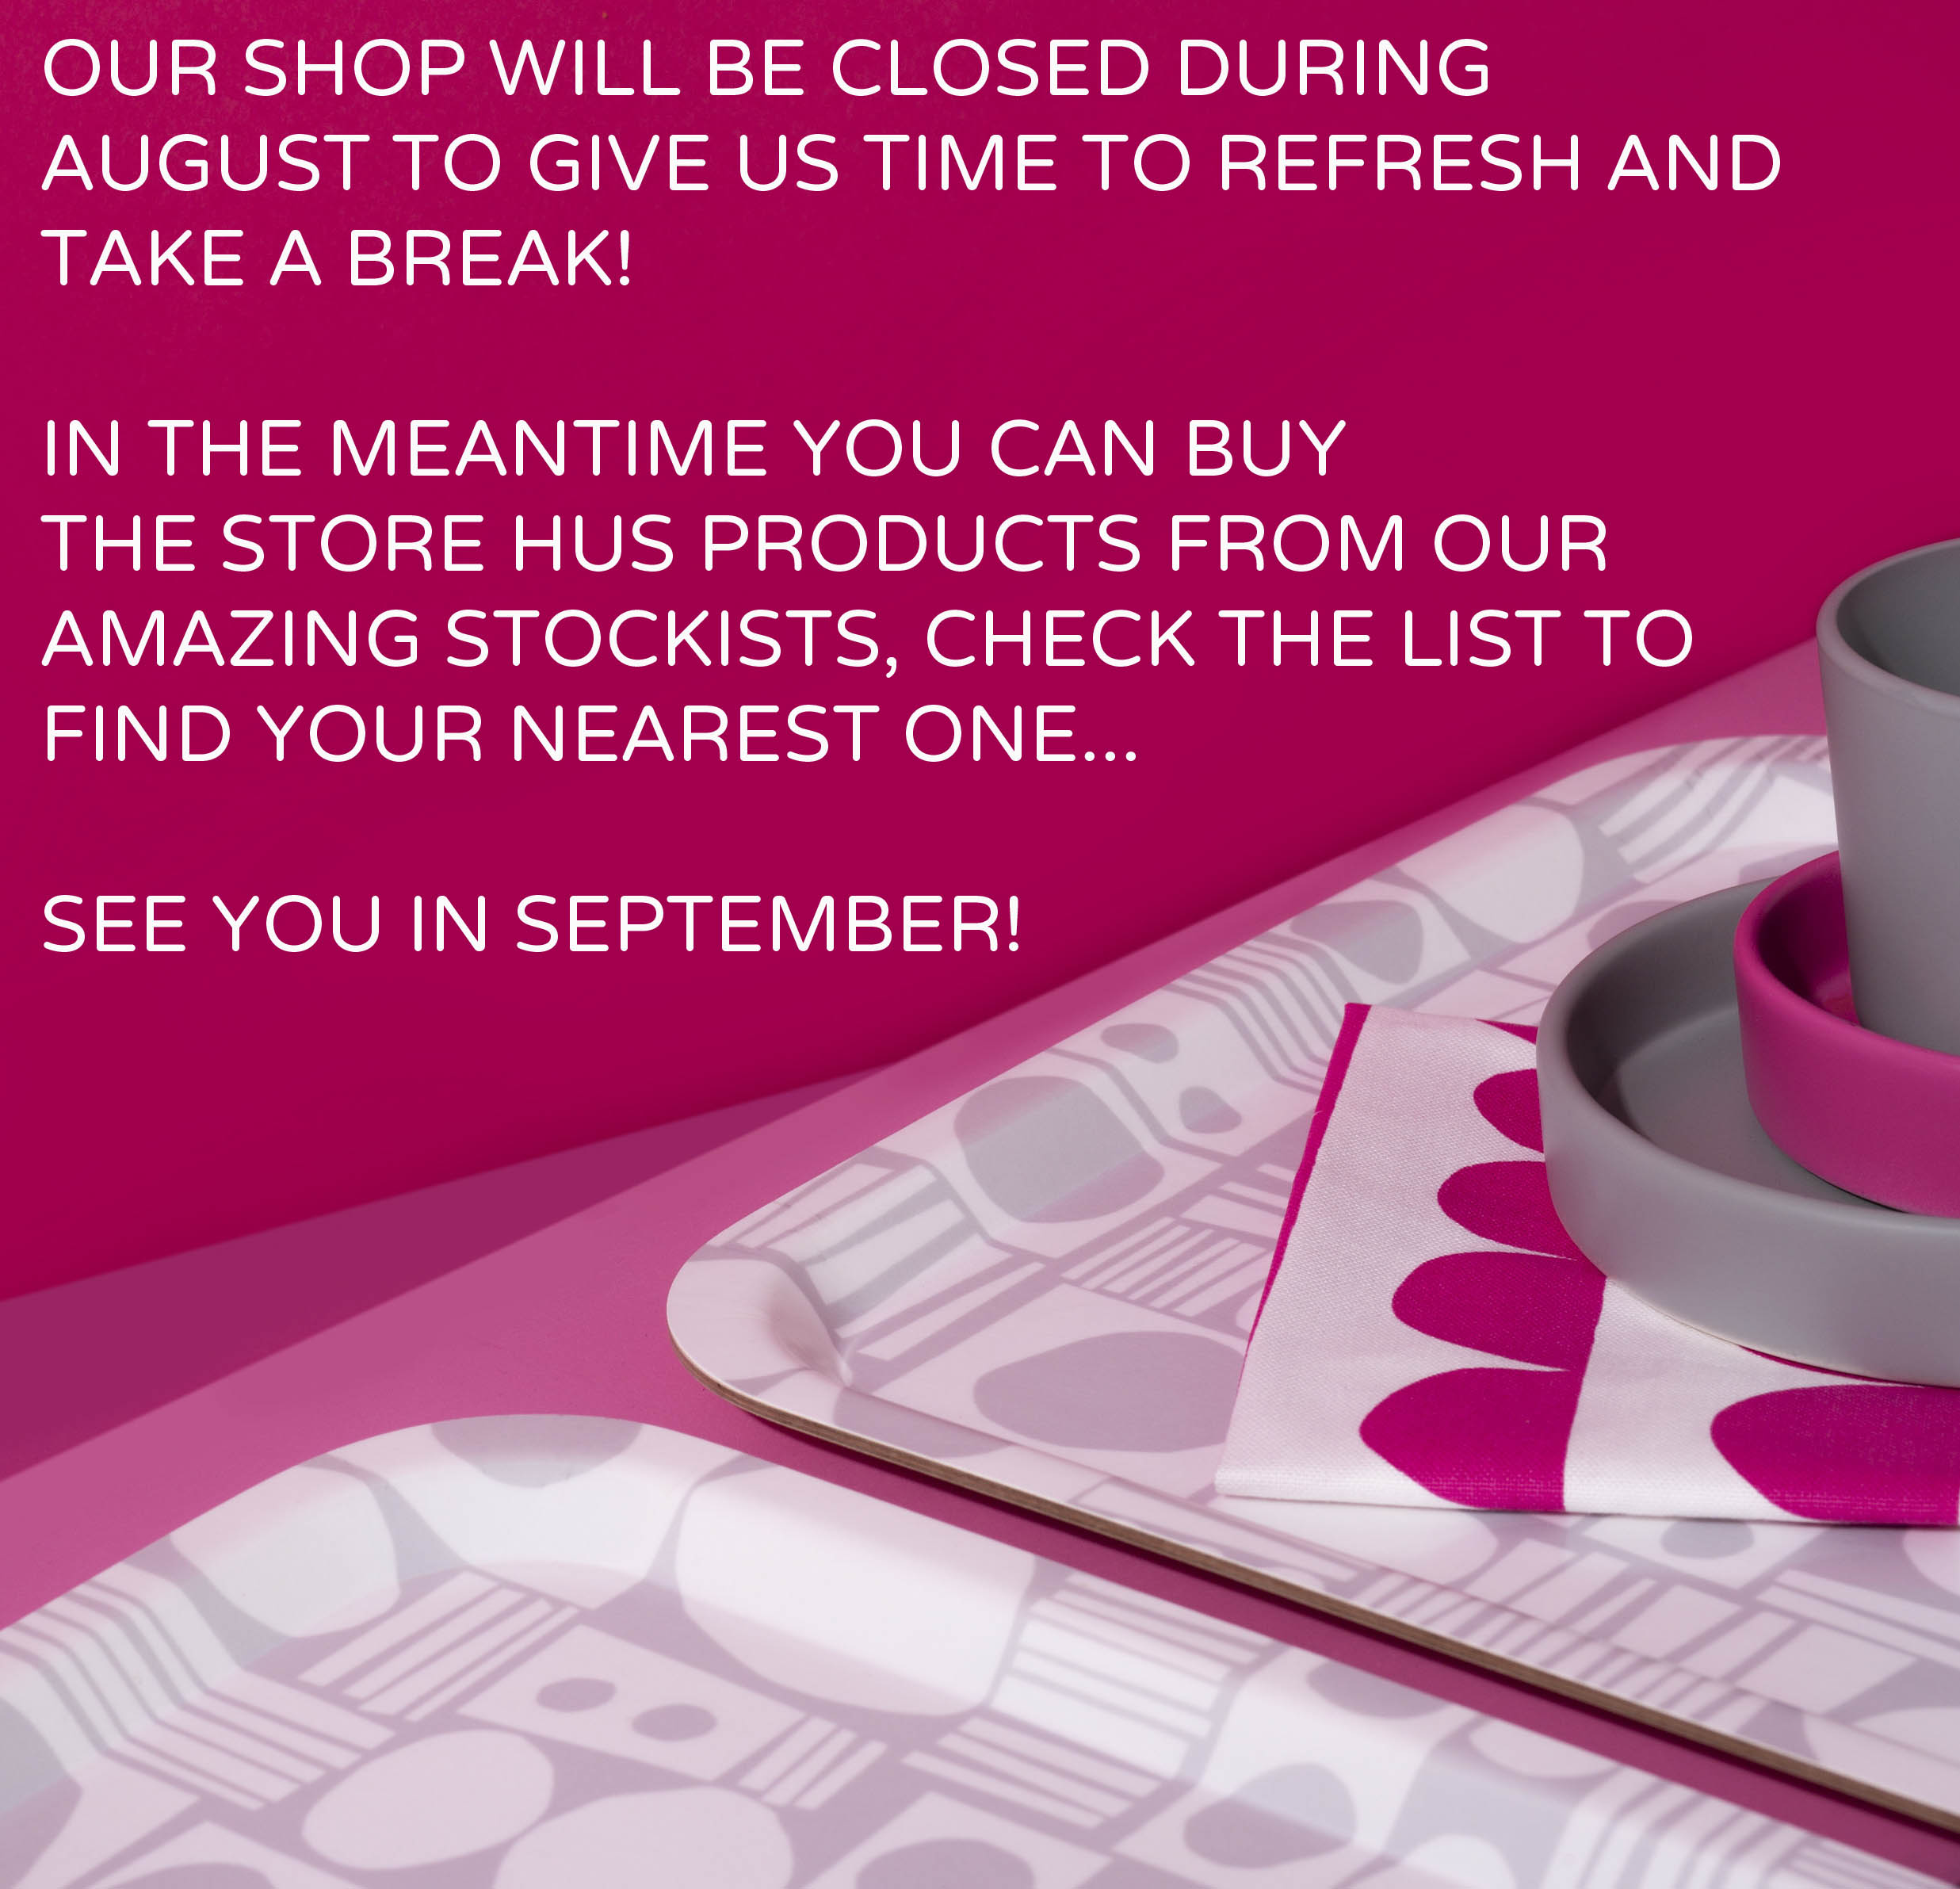 August shop closure